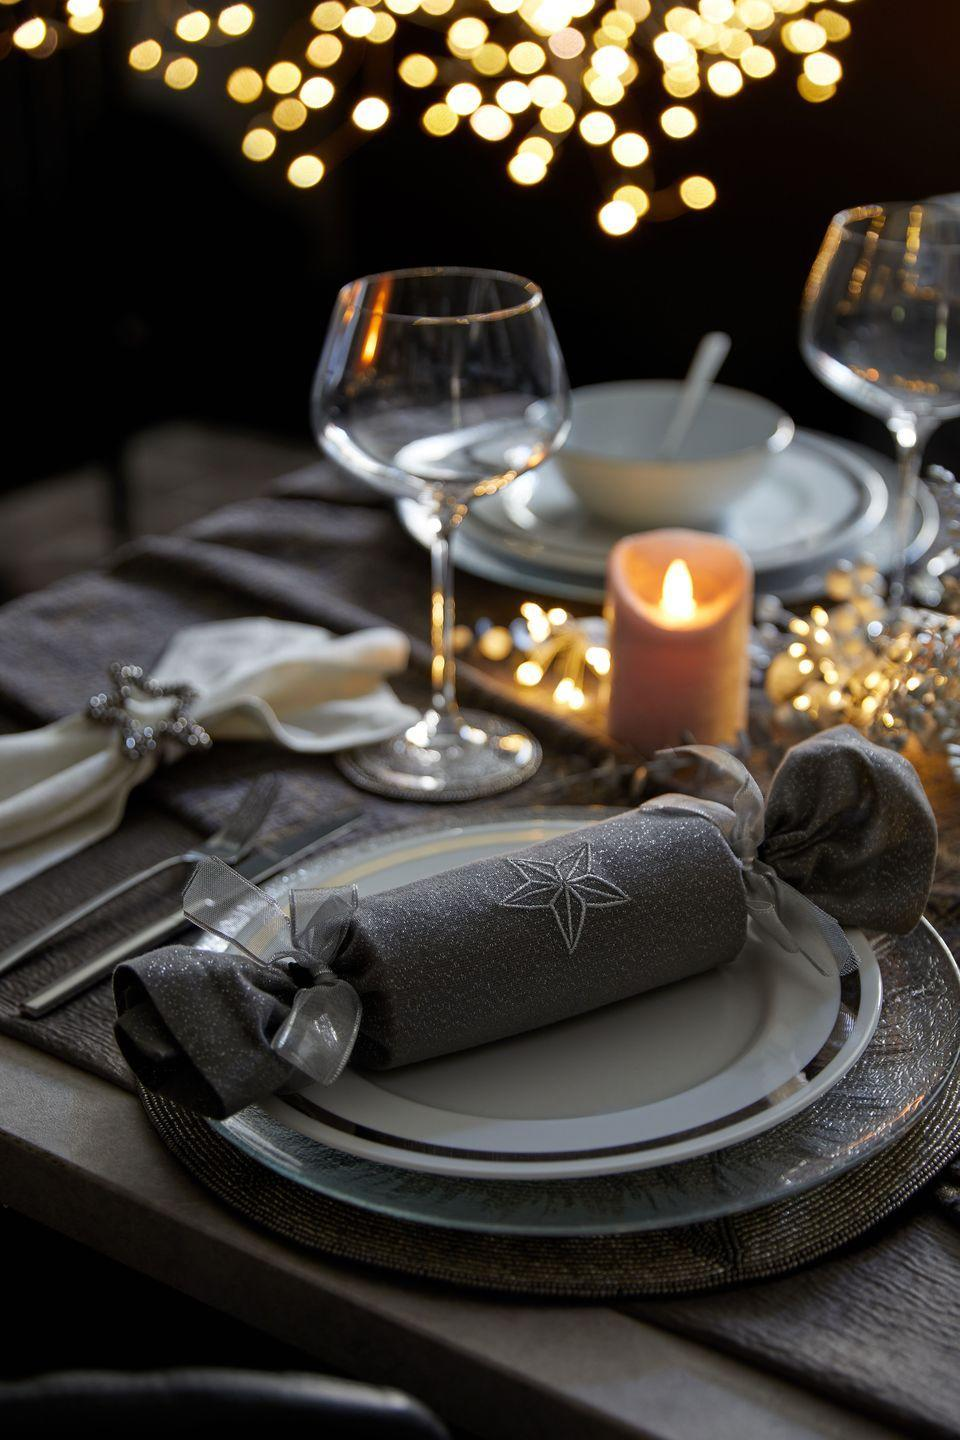 """<p>A huge part of festive celebrations orbit around the table, so it's important you decorate yours just right. Set the mood this Christmas with candles, fairy lights and a touch of sparkle. Whether you're entertaining or simply cooking for your household, the new range hits the spot. </p><p><strong>READ MORE</strong>: <a href=""""https://www.housebeautiful.com/uk/decorate/looks/a35055193/christmas-table-ideas/"""" rel=""""nofollow noopener"""" target=""""_blank"""" data-ylk=""""slk:How to decorate and style your Christmas table"""" class=""""link rapid-noclick-resp"""">How to decorate and style your Christmas table</a></p>"""